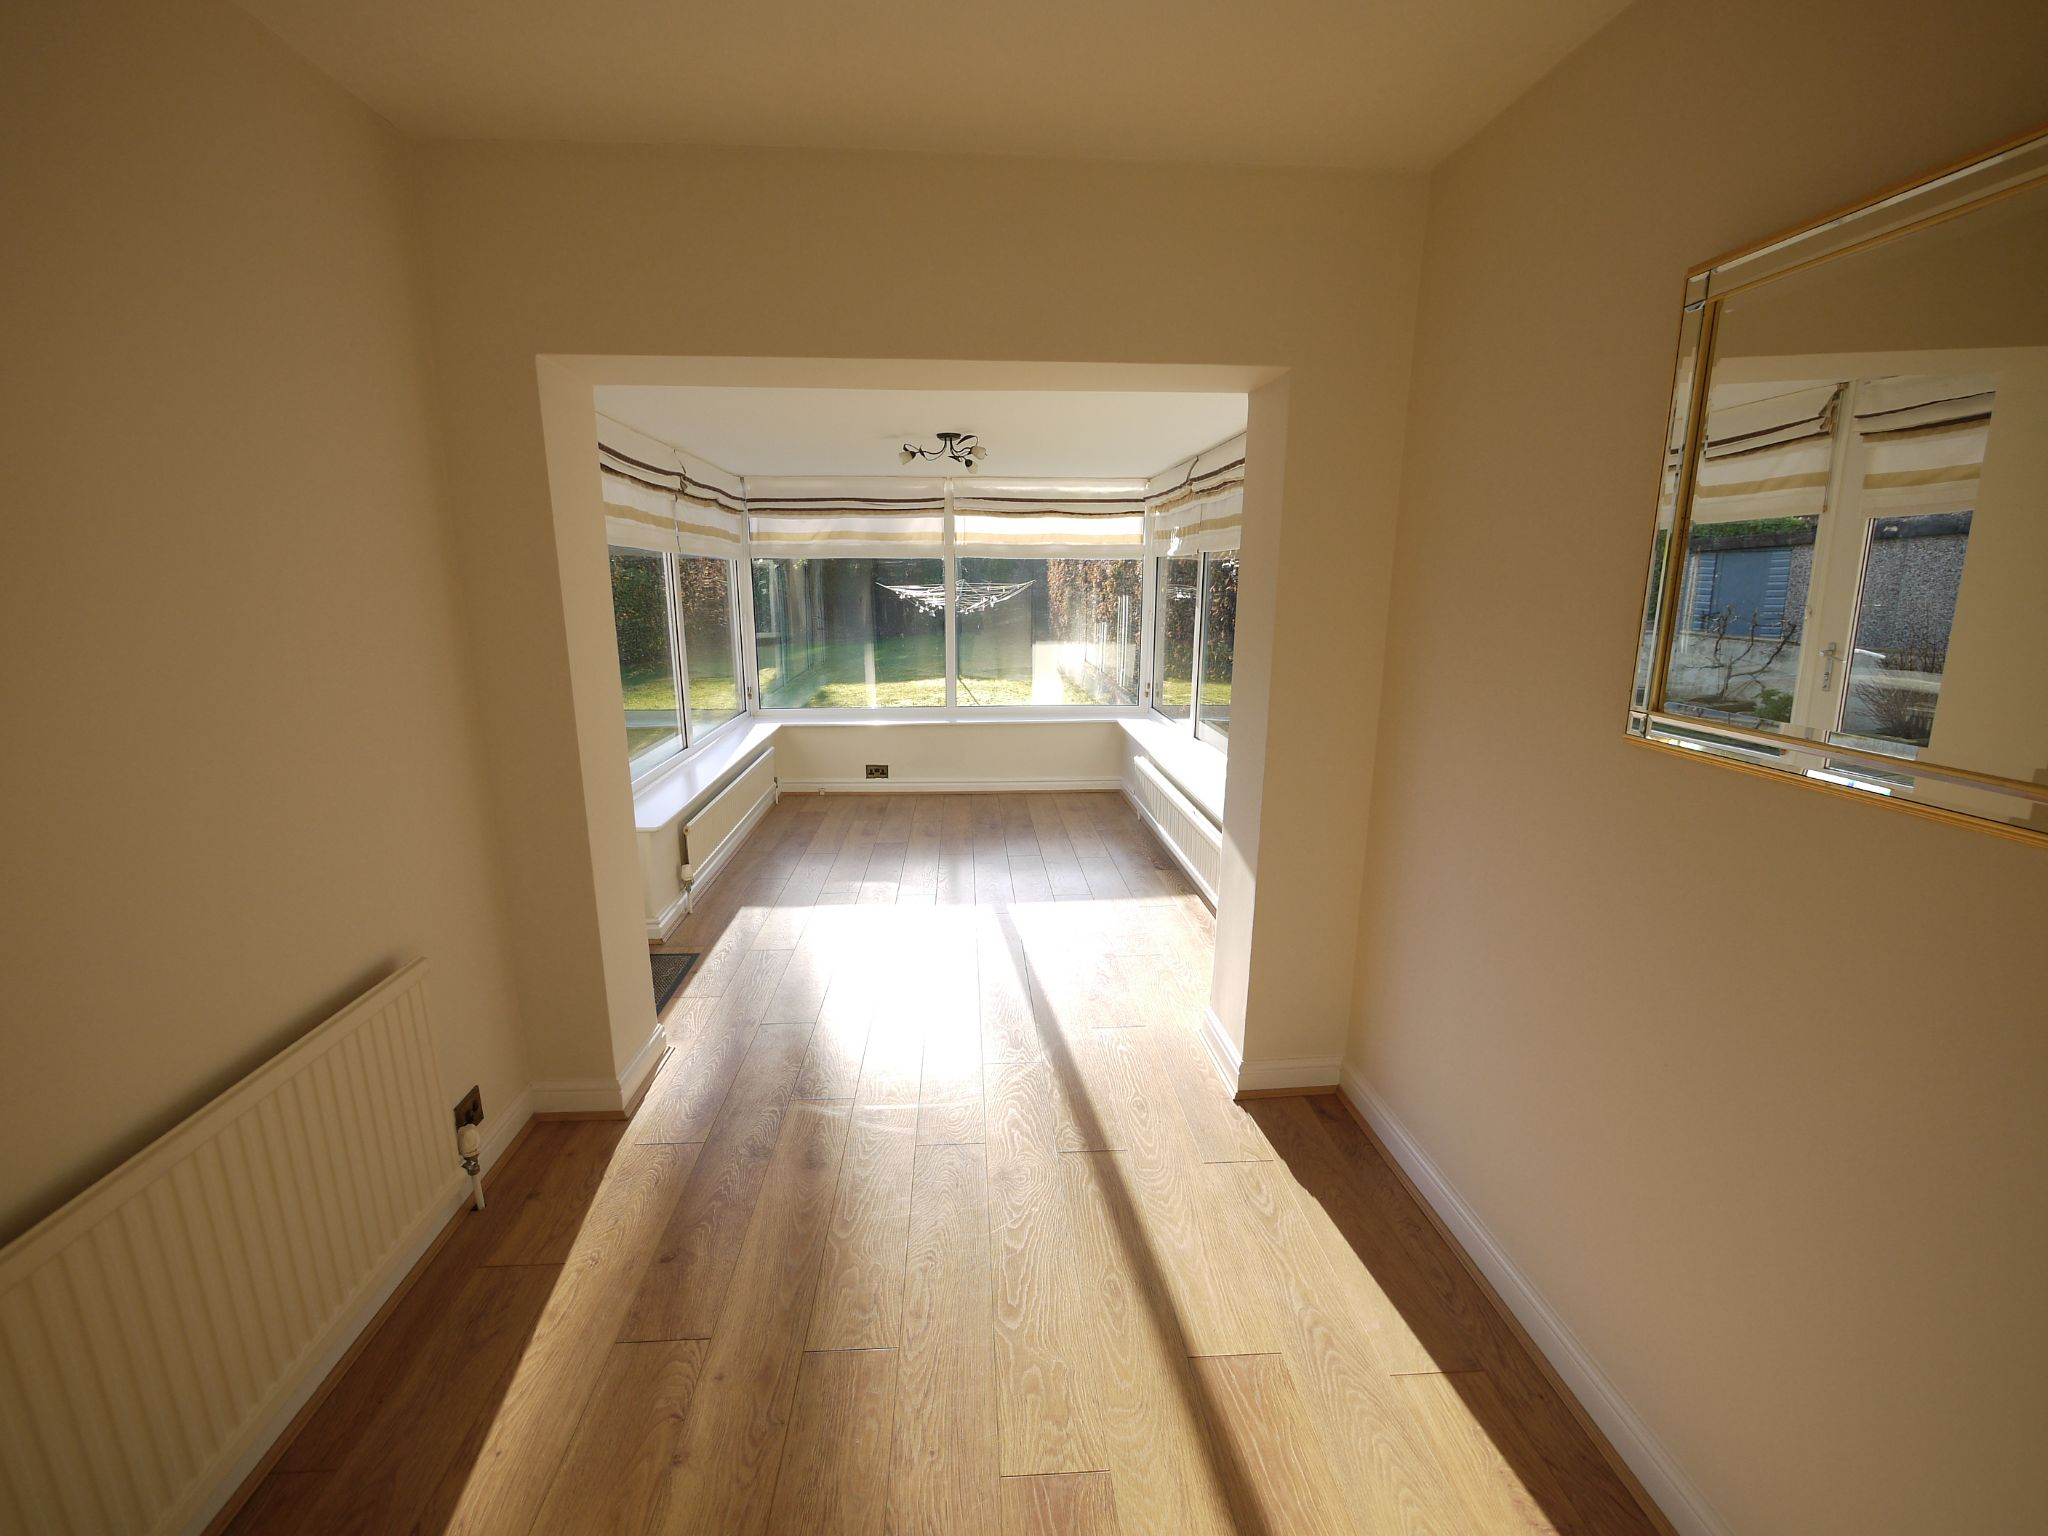 5 bedroom detached bungalow For Sale in Brighouse - dining/garden room.